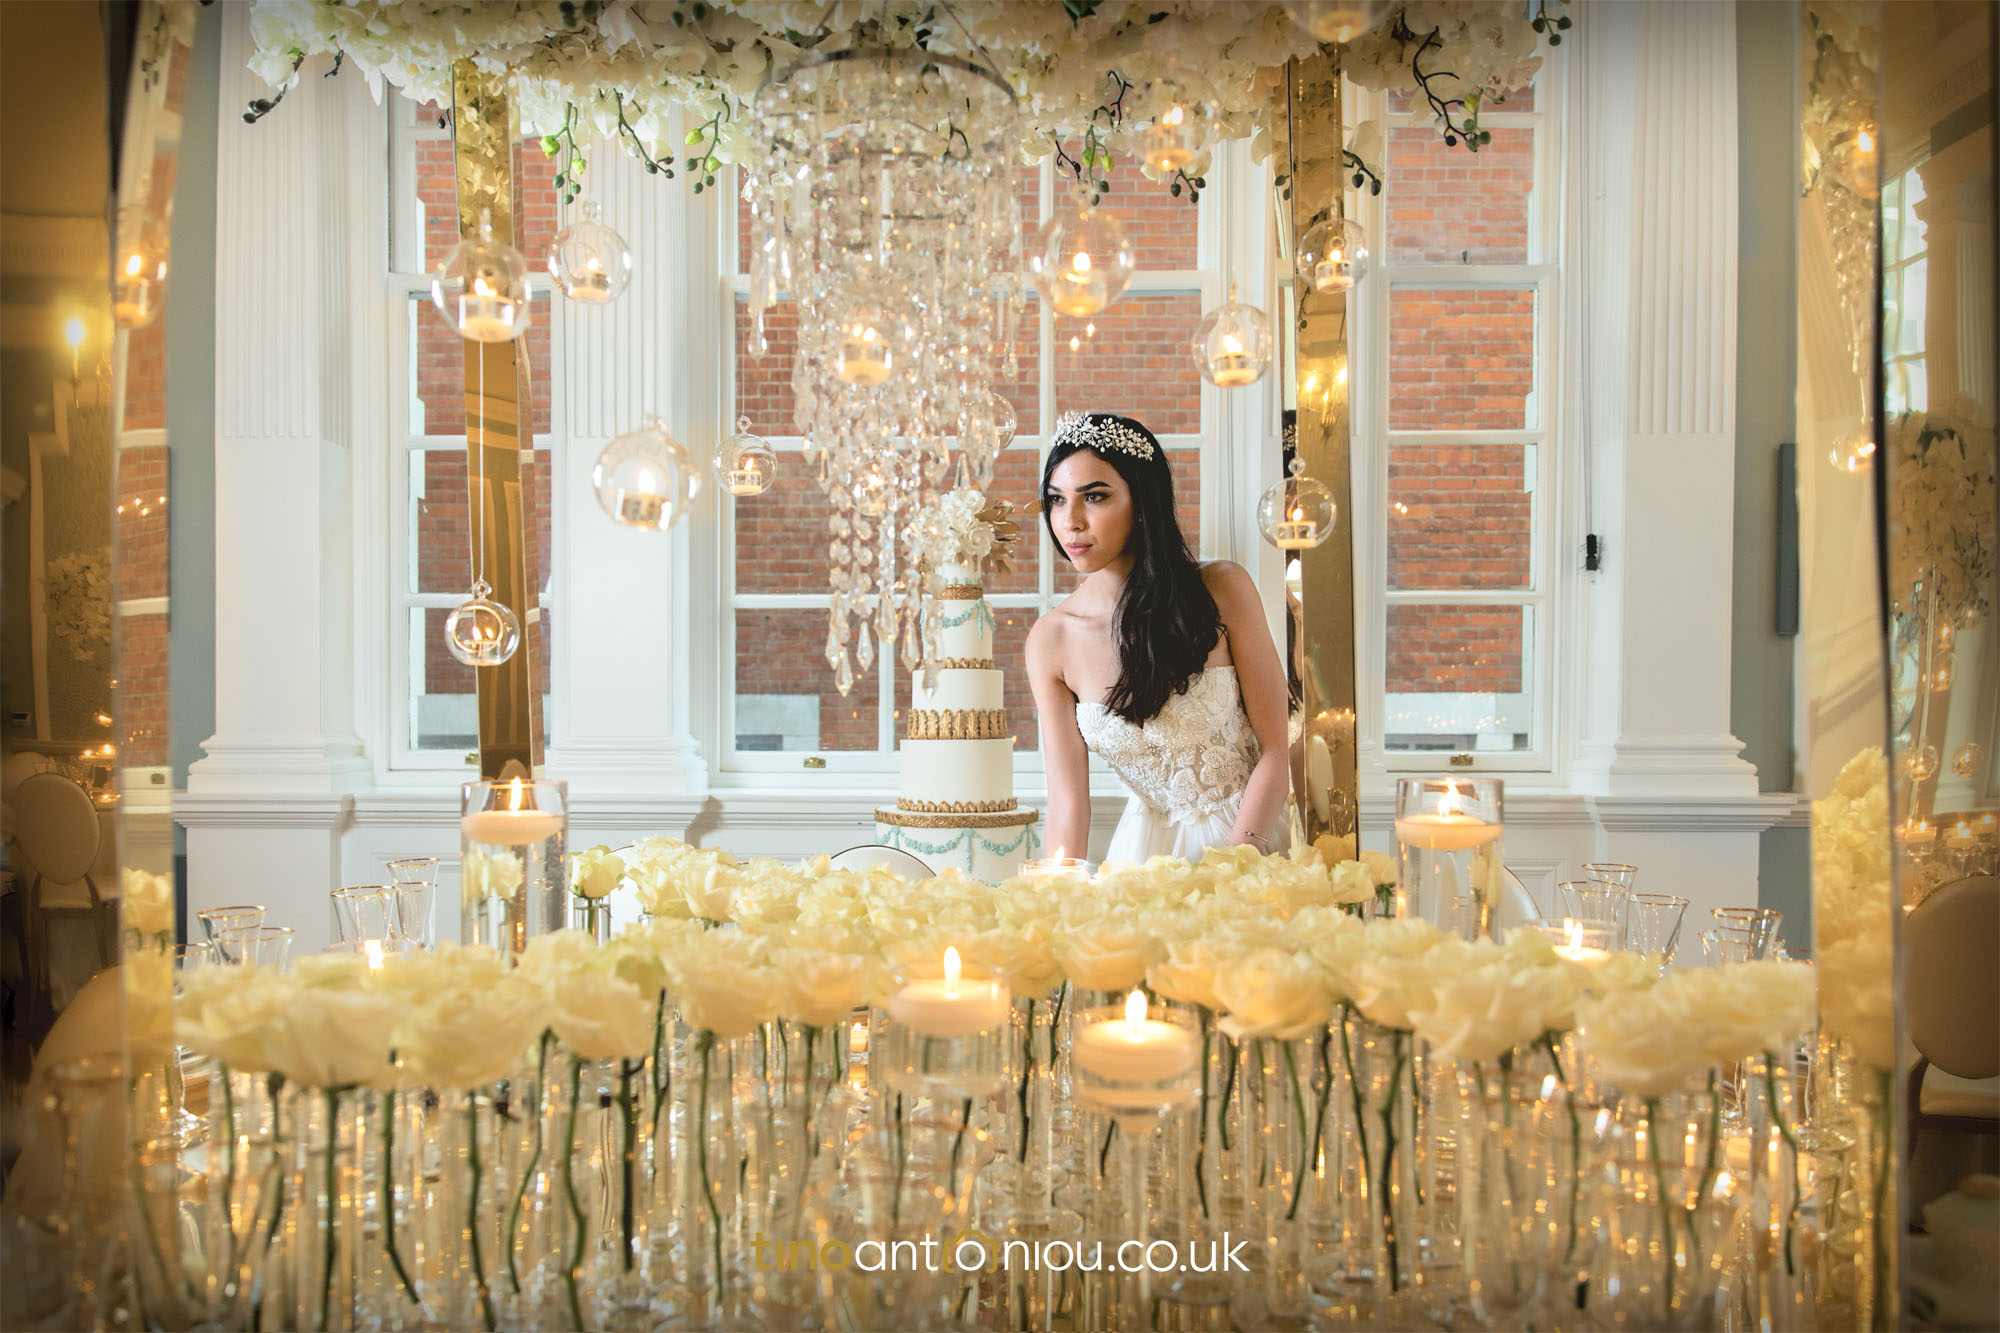 modern-bride-surrounded-by-candles-in-wedding-venue-Chelsea-London